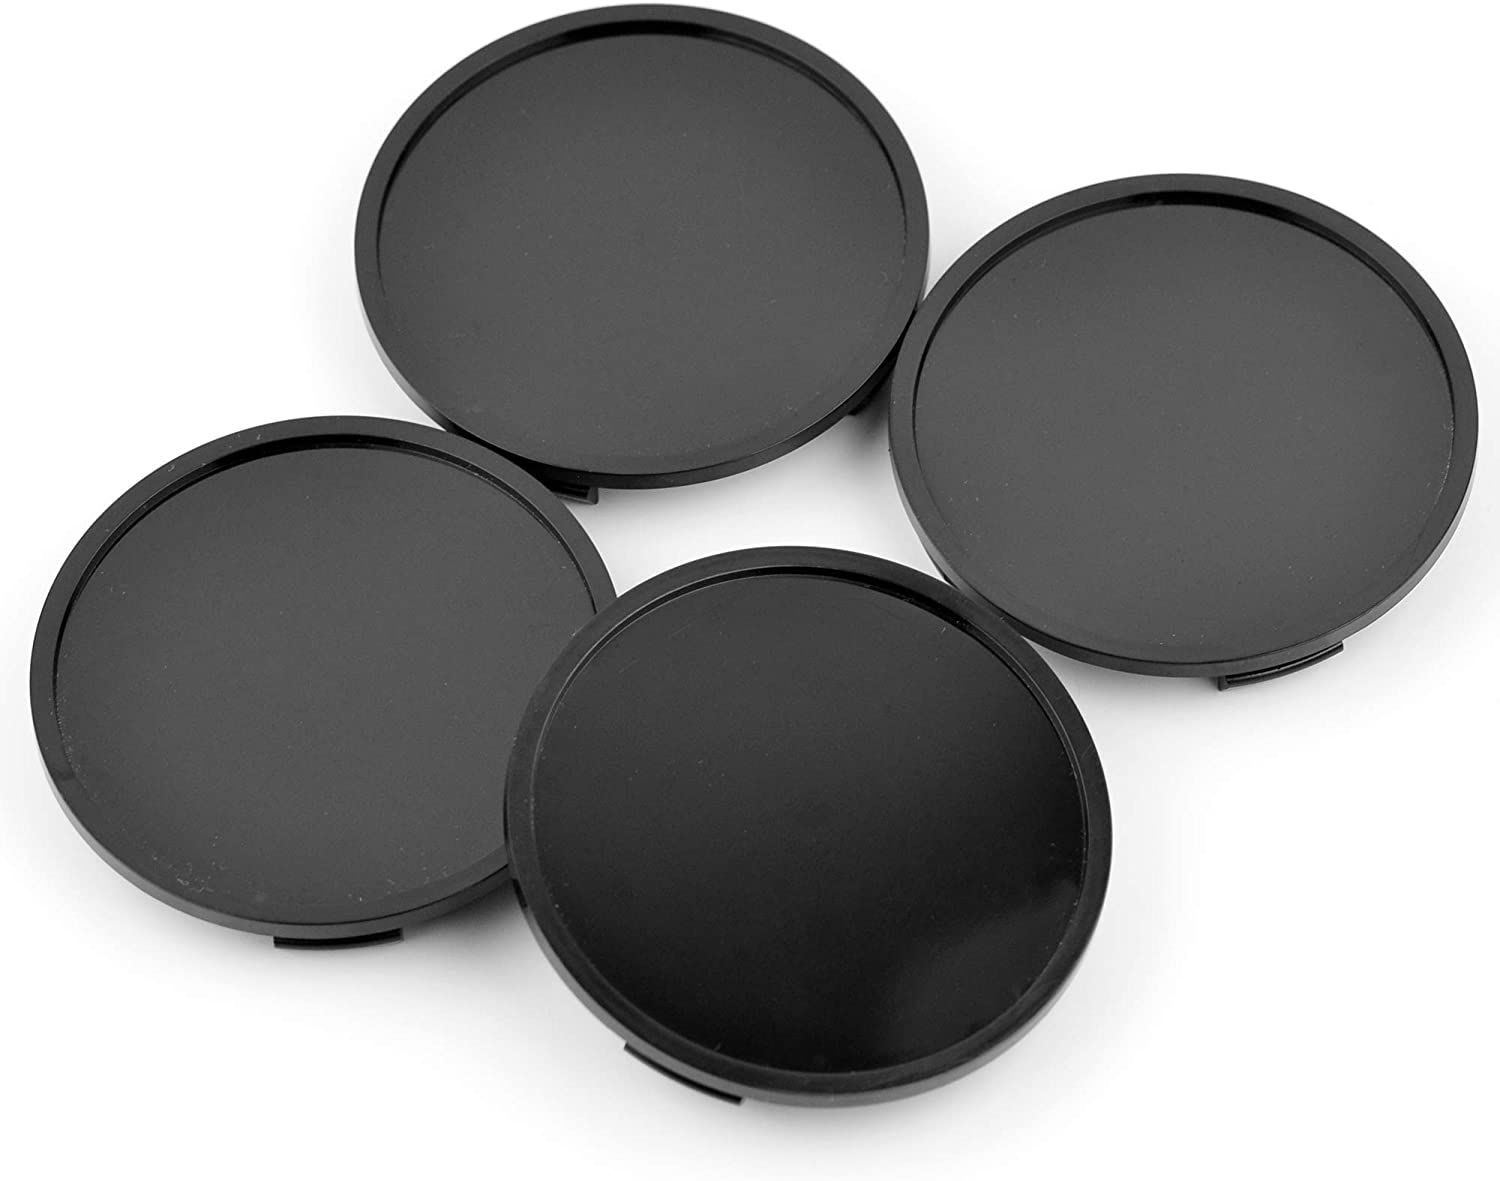 76mm(2.99in)/72mm(2.83in) Wheel Hub Center Caps Set of 4 Black Base for Auto Accessories